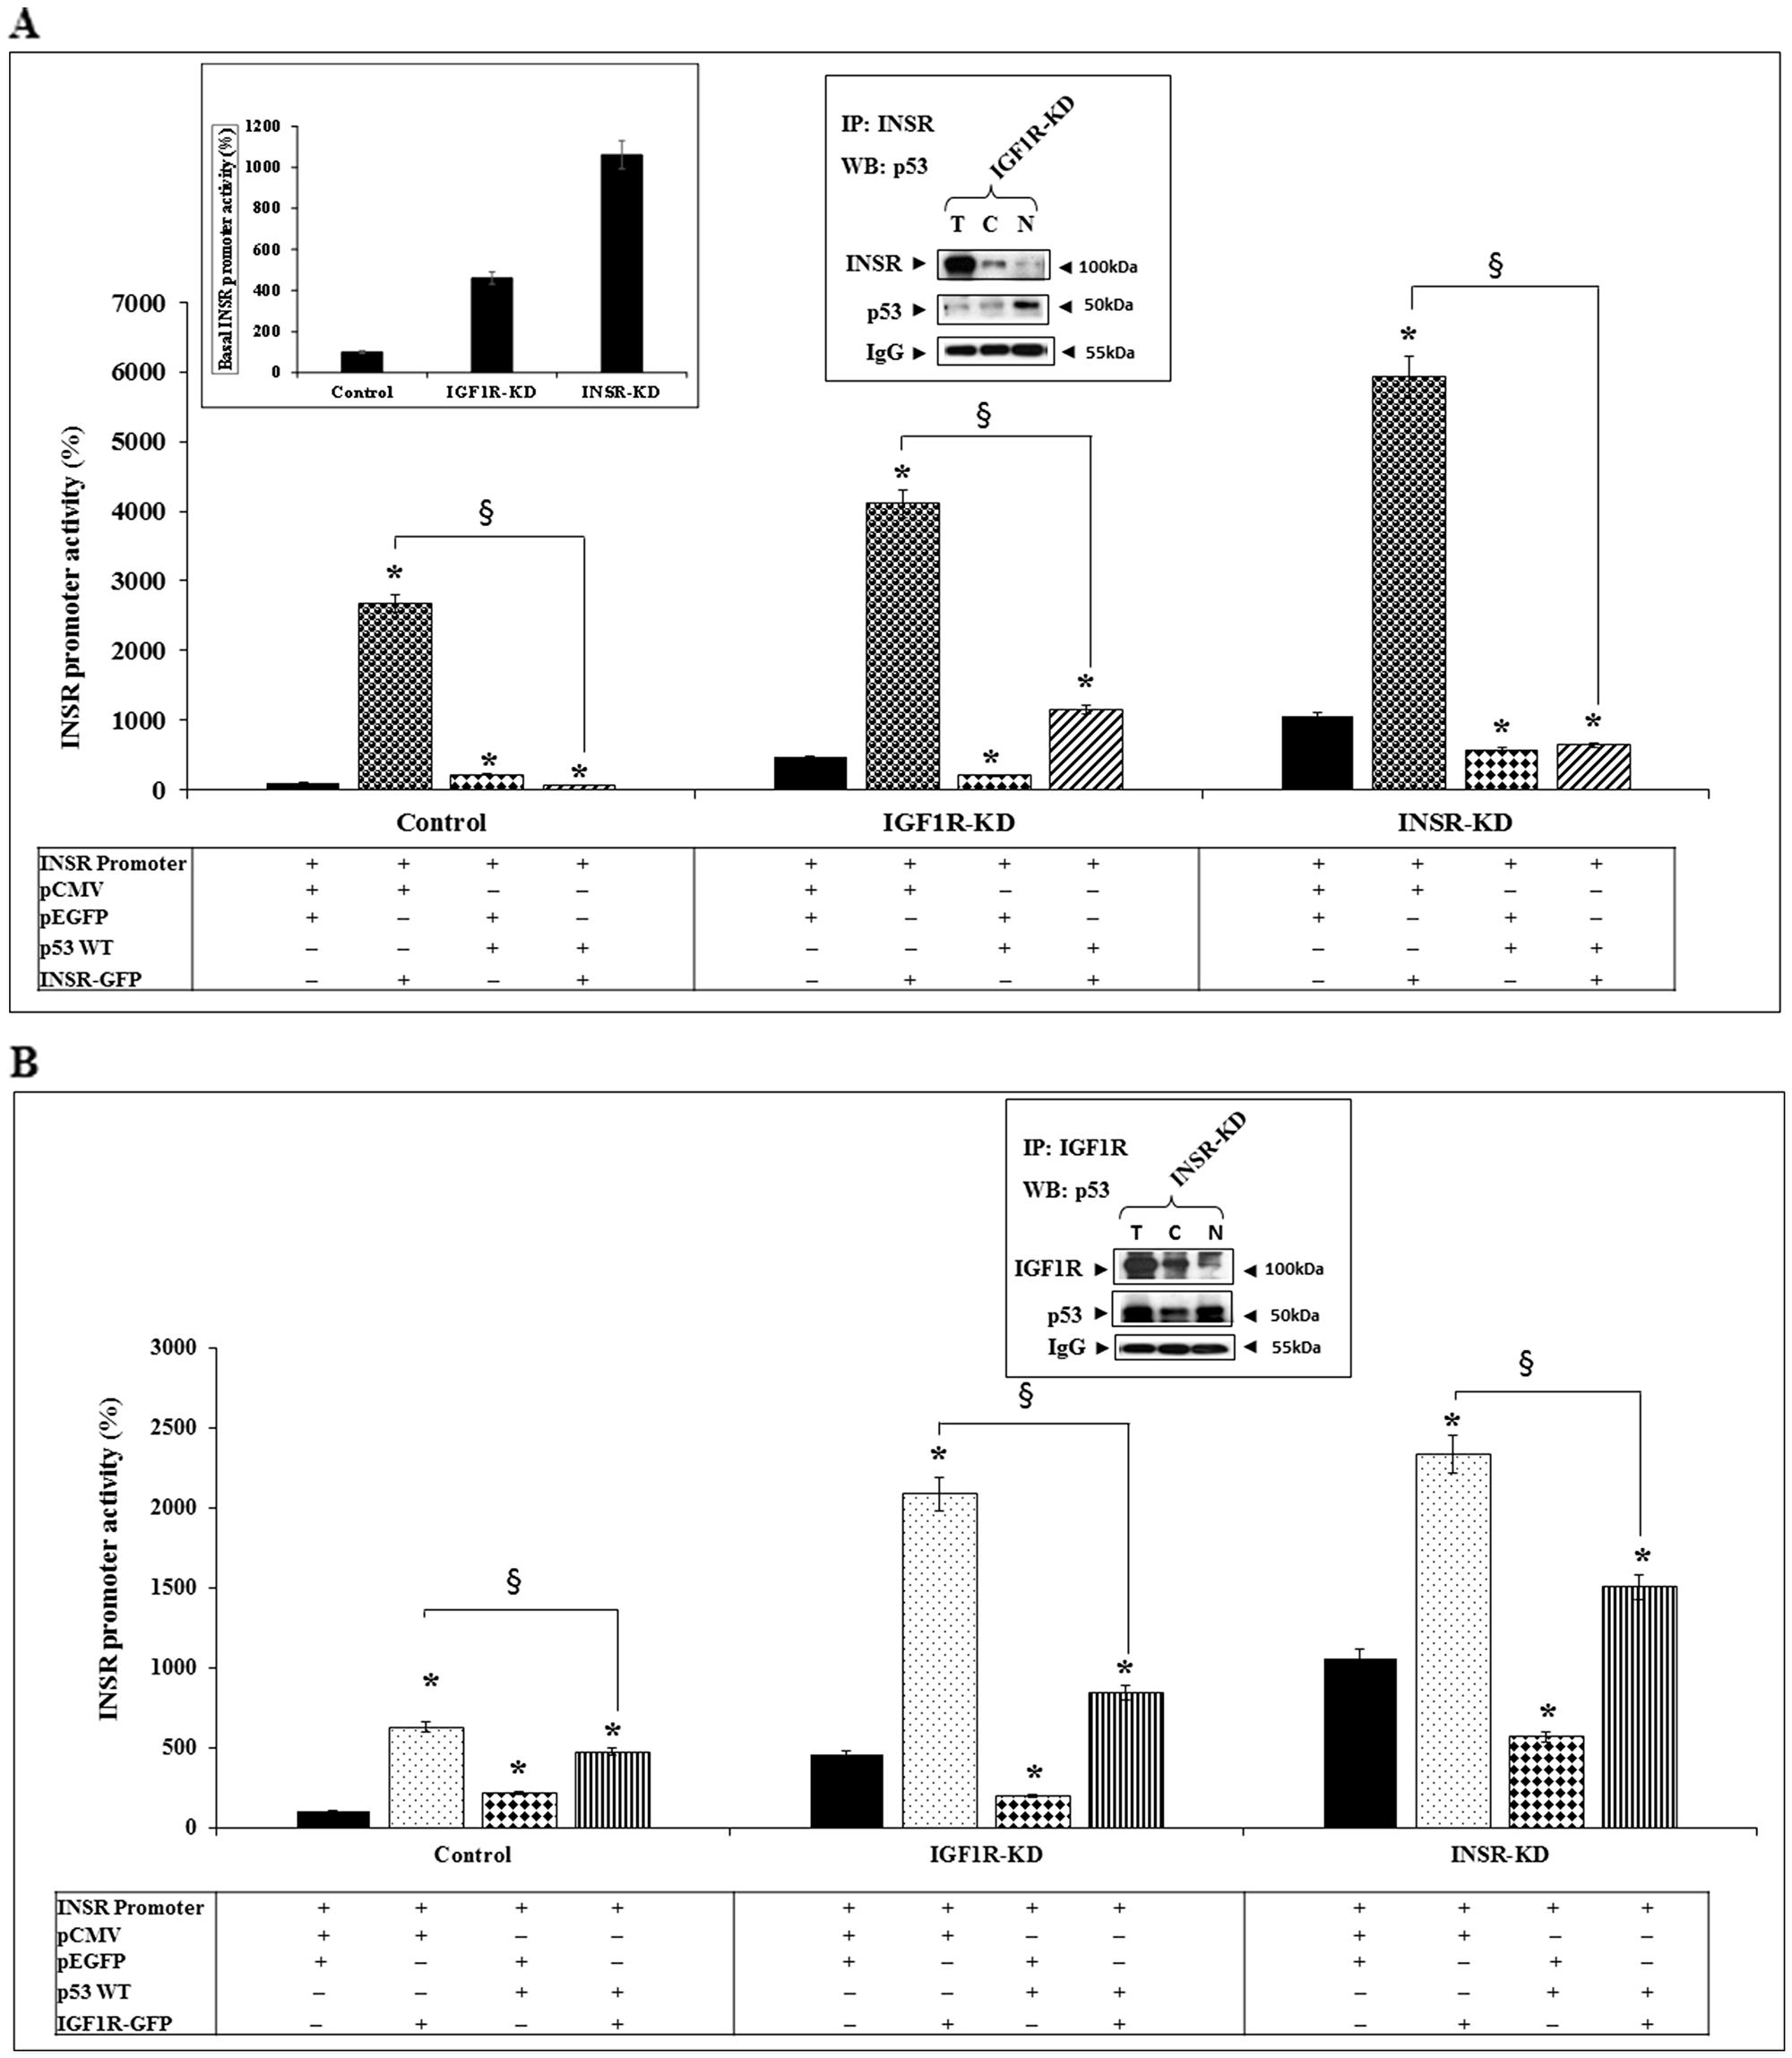 Functional interactions between INSR/IGF1R and p53 in regulation of INSR promoter activity.